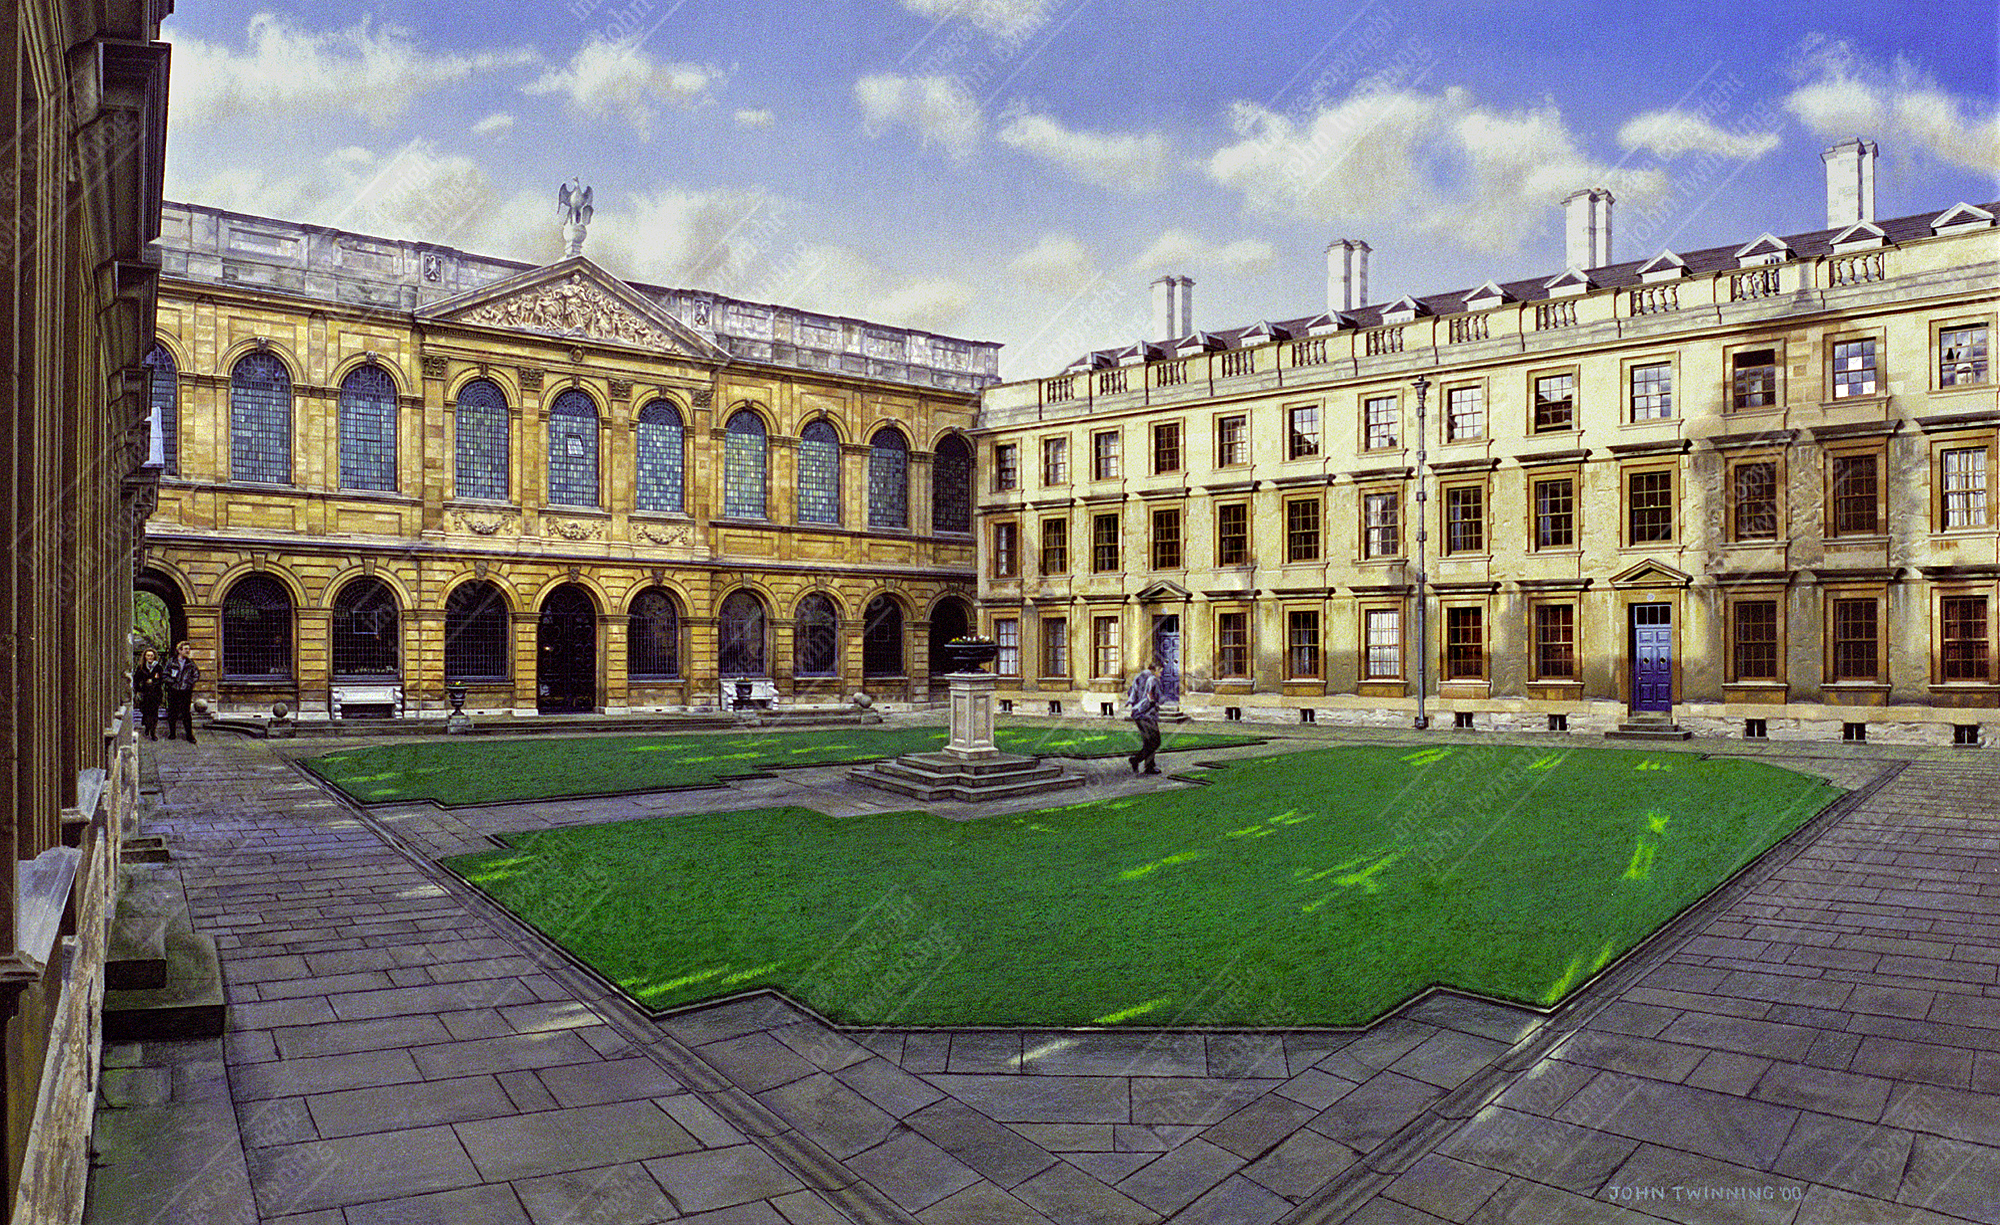 40% off! The Queen's College, Oxford: Back Quad